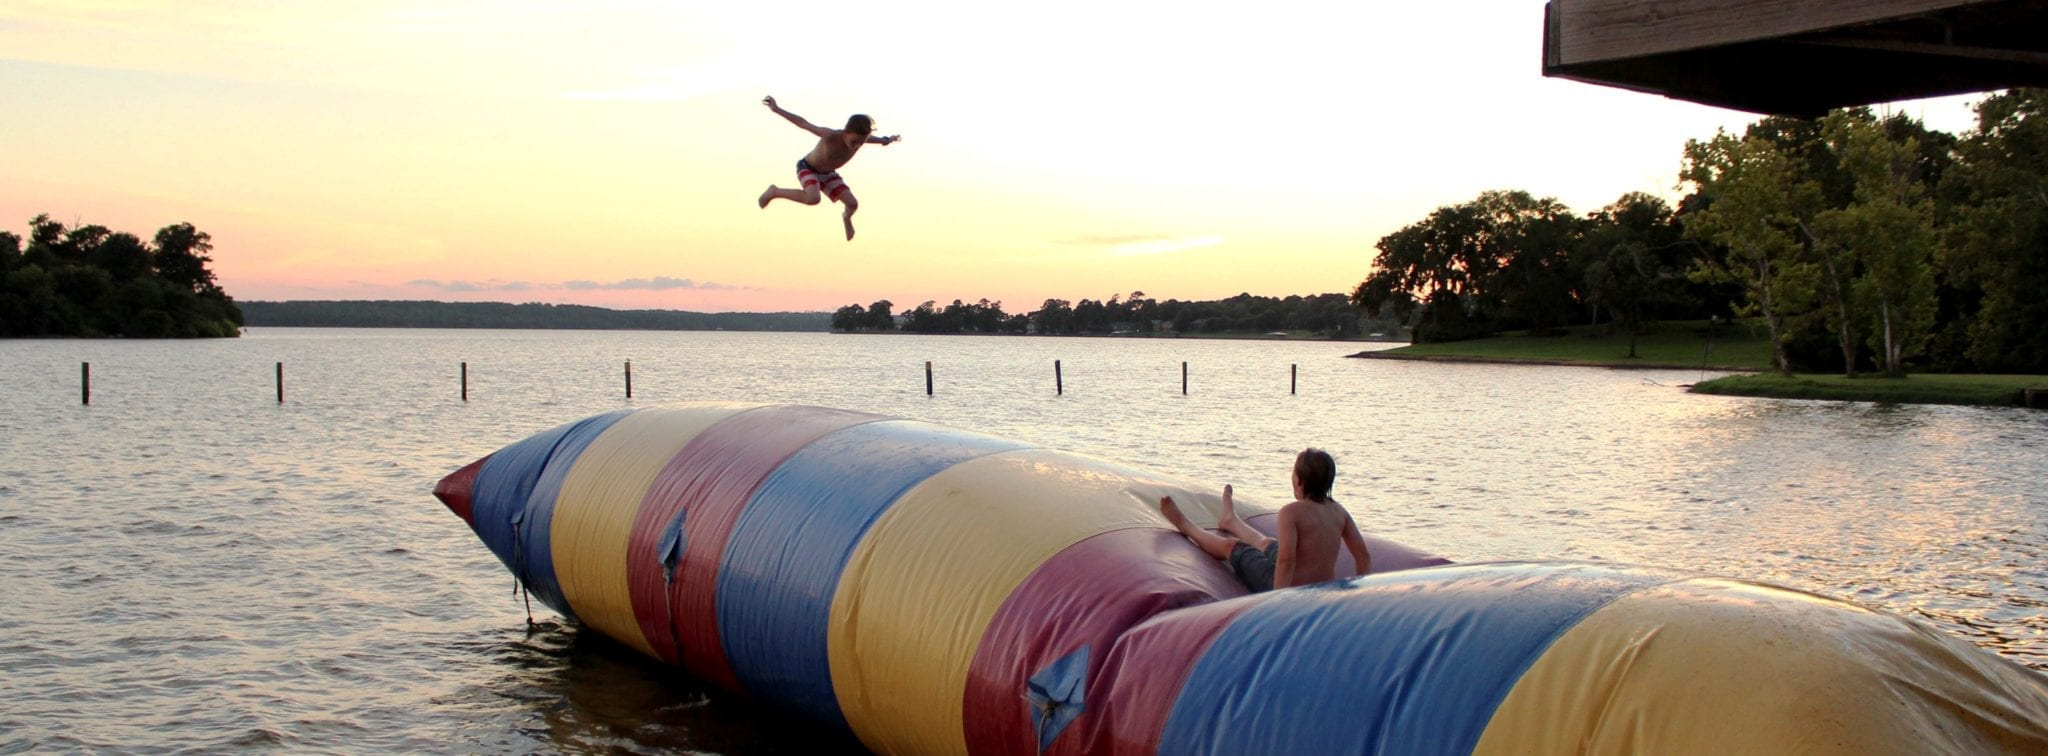 Two young boys jumping on a floating inflatable blob on a lake.